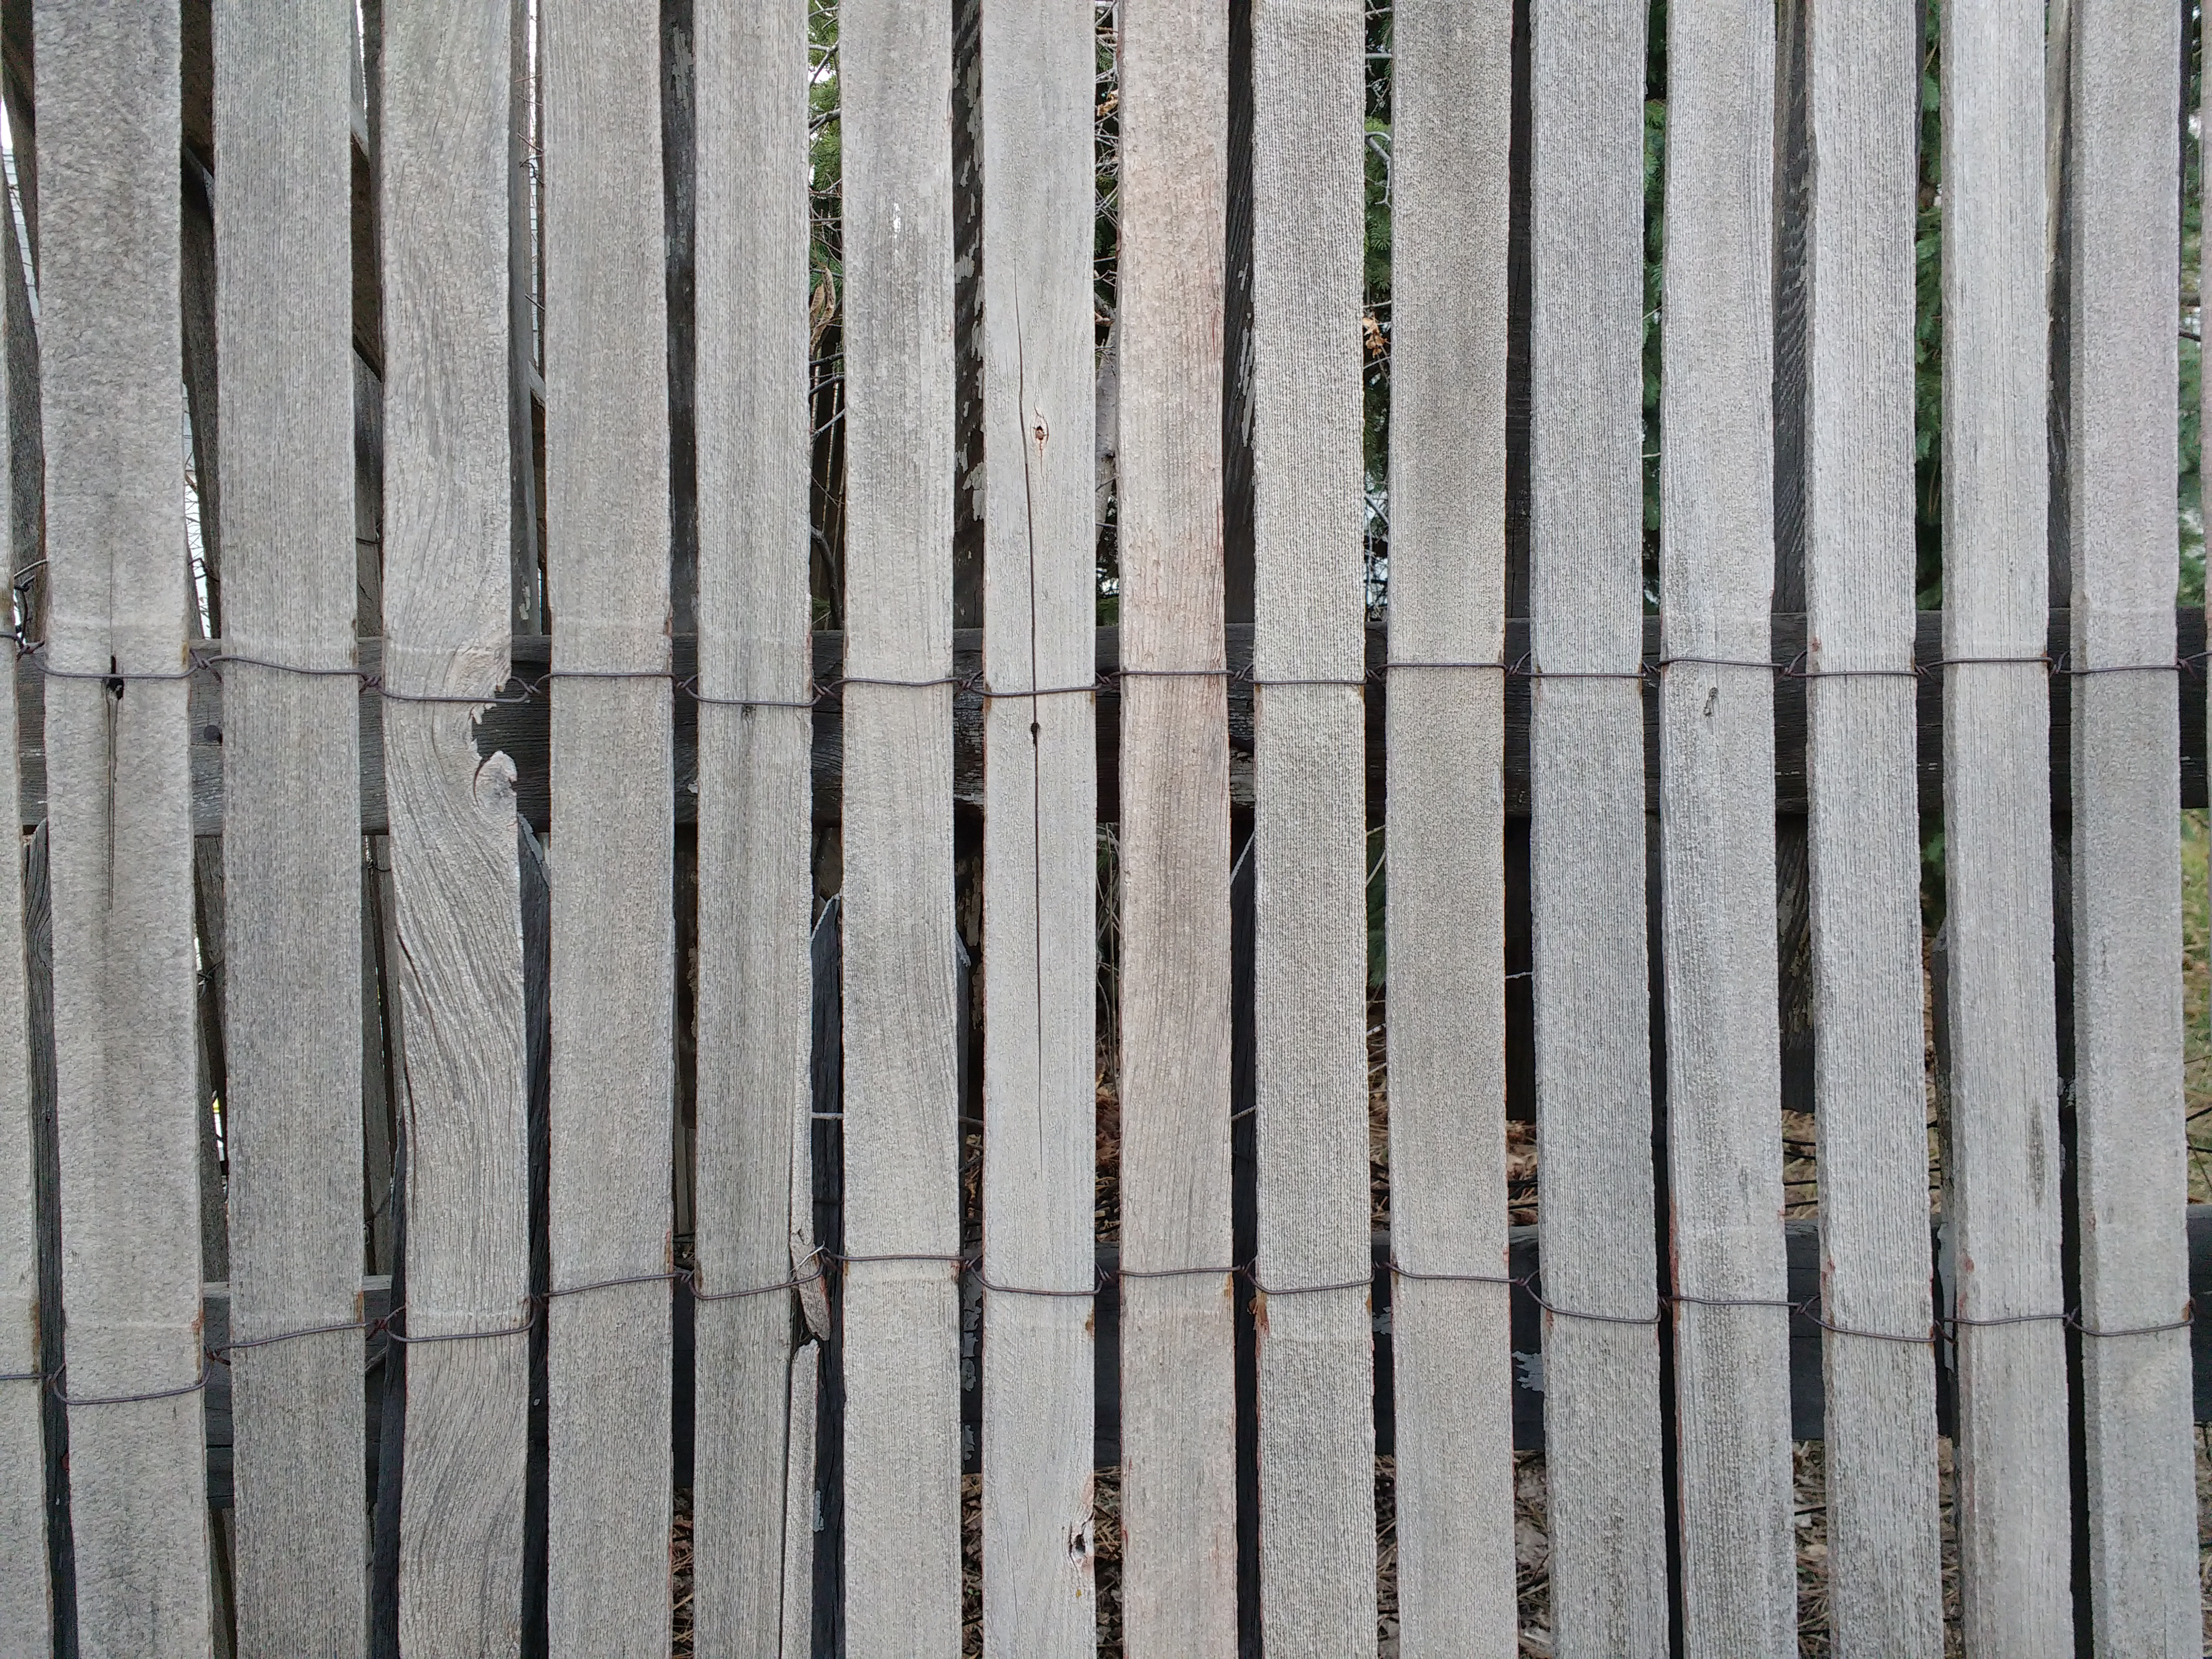 Weathered Rolled Wood Fencing Texture Picture Free